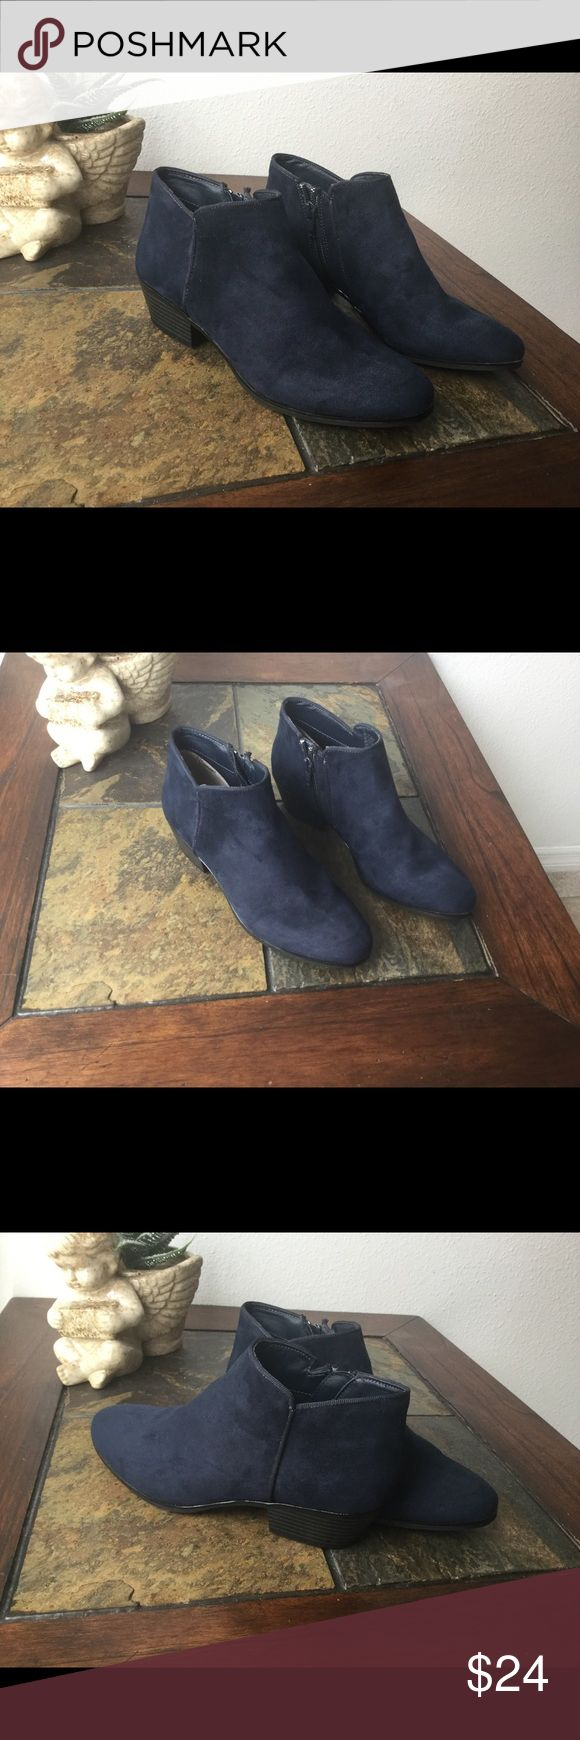 Ankle Boots Like New St John's Bay suede blue navy ankle boots in size 7 🔺Bundle 2+get 10% off🔺 St John's Bay Shoes Ankle Boots & Booties